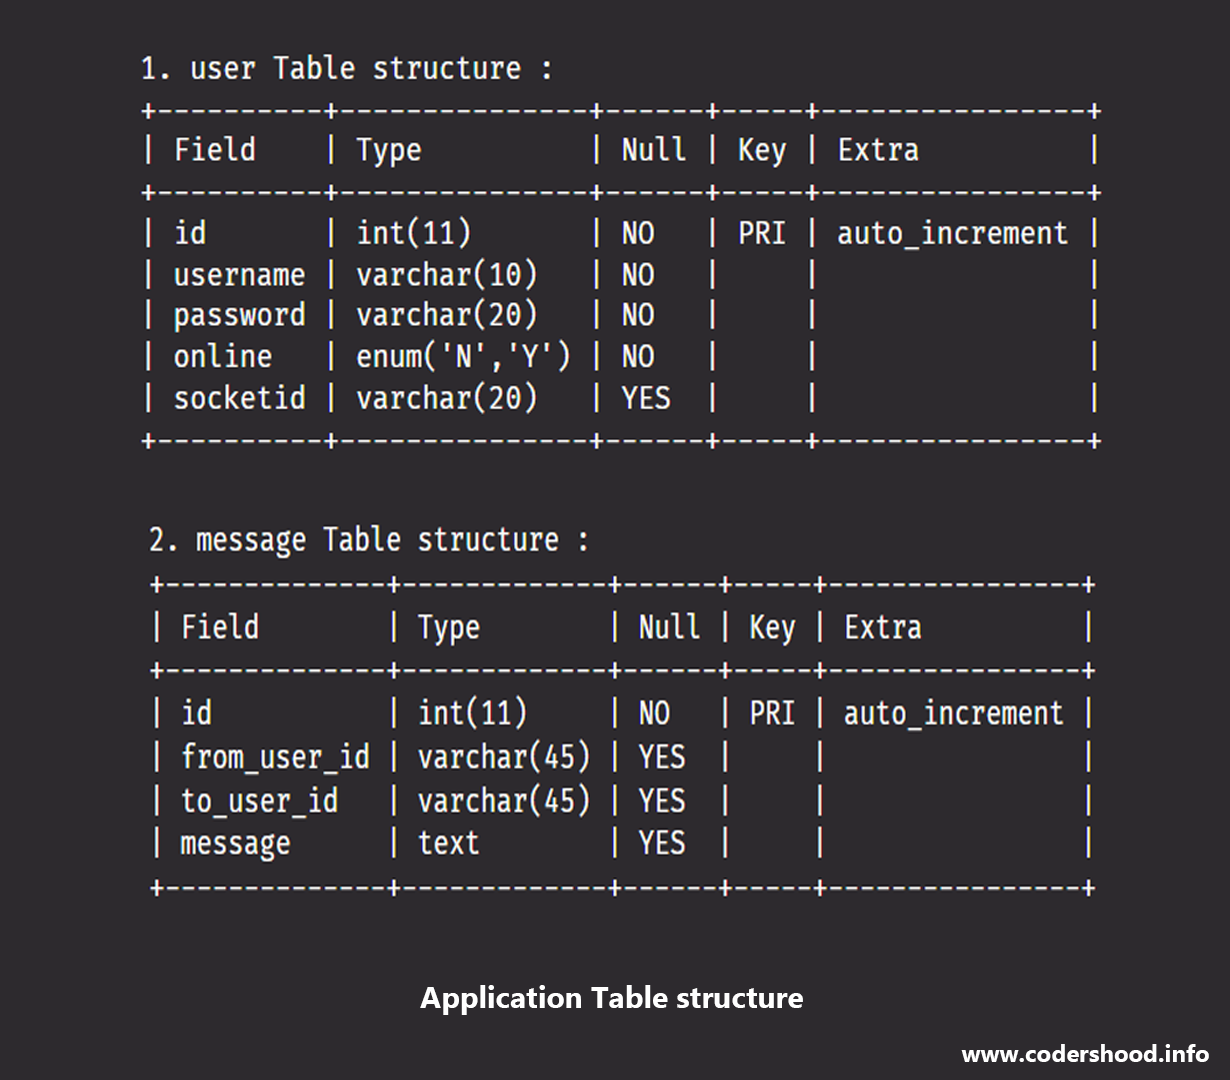 Real Time chatting app Application Table structure